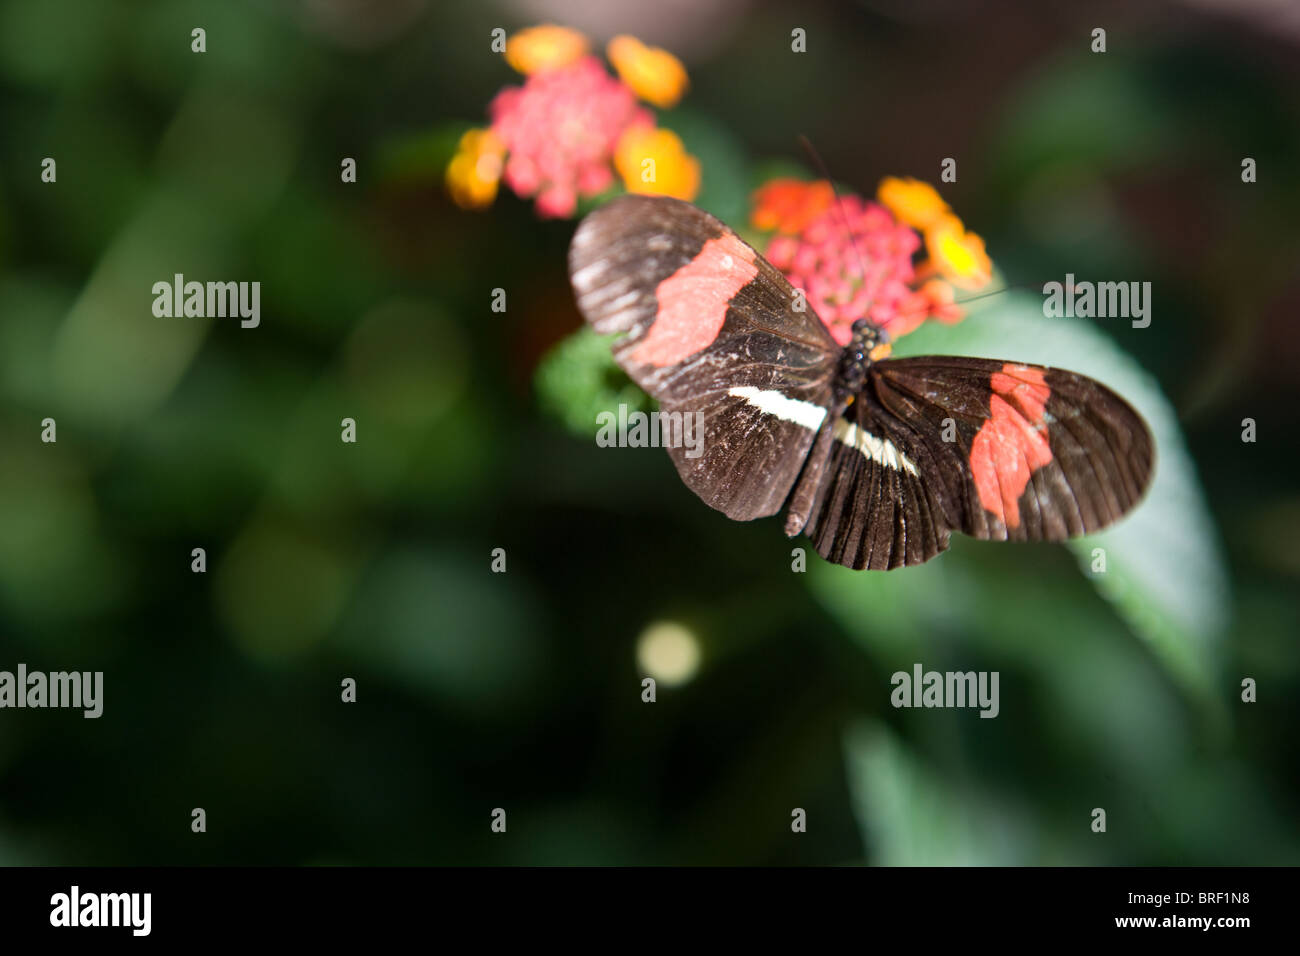 pink-striped butterfly drinking from a flower, high angle view, Southwestern United States - Stock Image